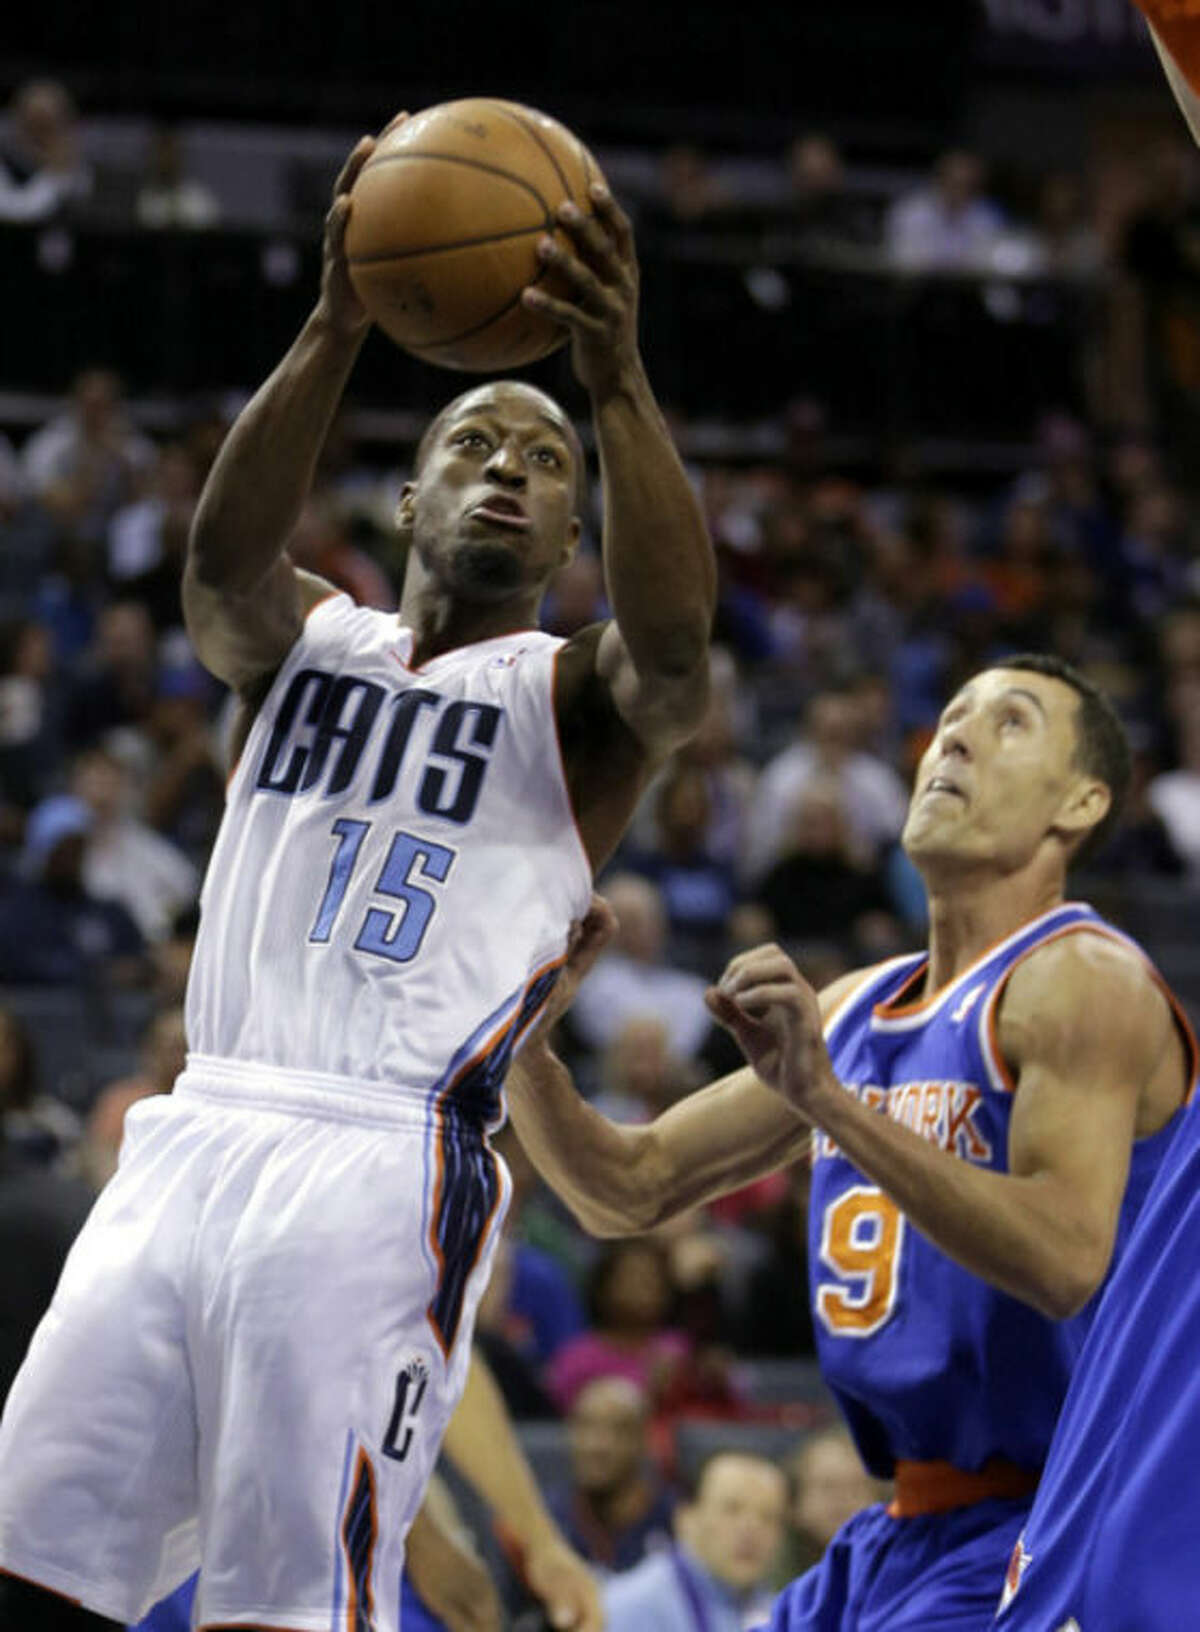 Charlotte Bobcats guard Kemba Walker, left, drives past New York Knicks guard Pablo Prigioni, of Argentina, in the first half of an NBA basketball game in Charlotte, N.C., Friday, Nov. 8, 2013. (AP Photo/Nell Redmond)